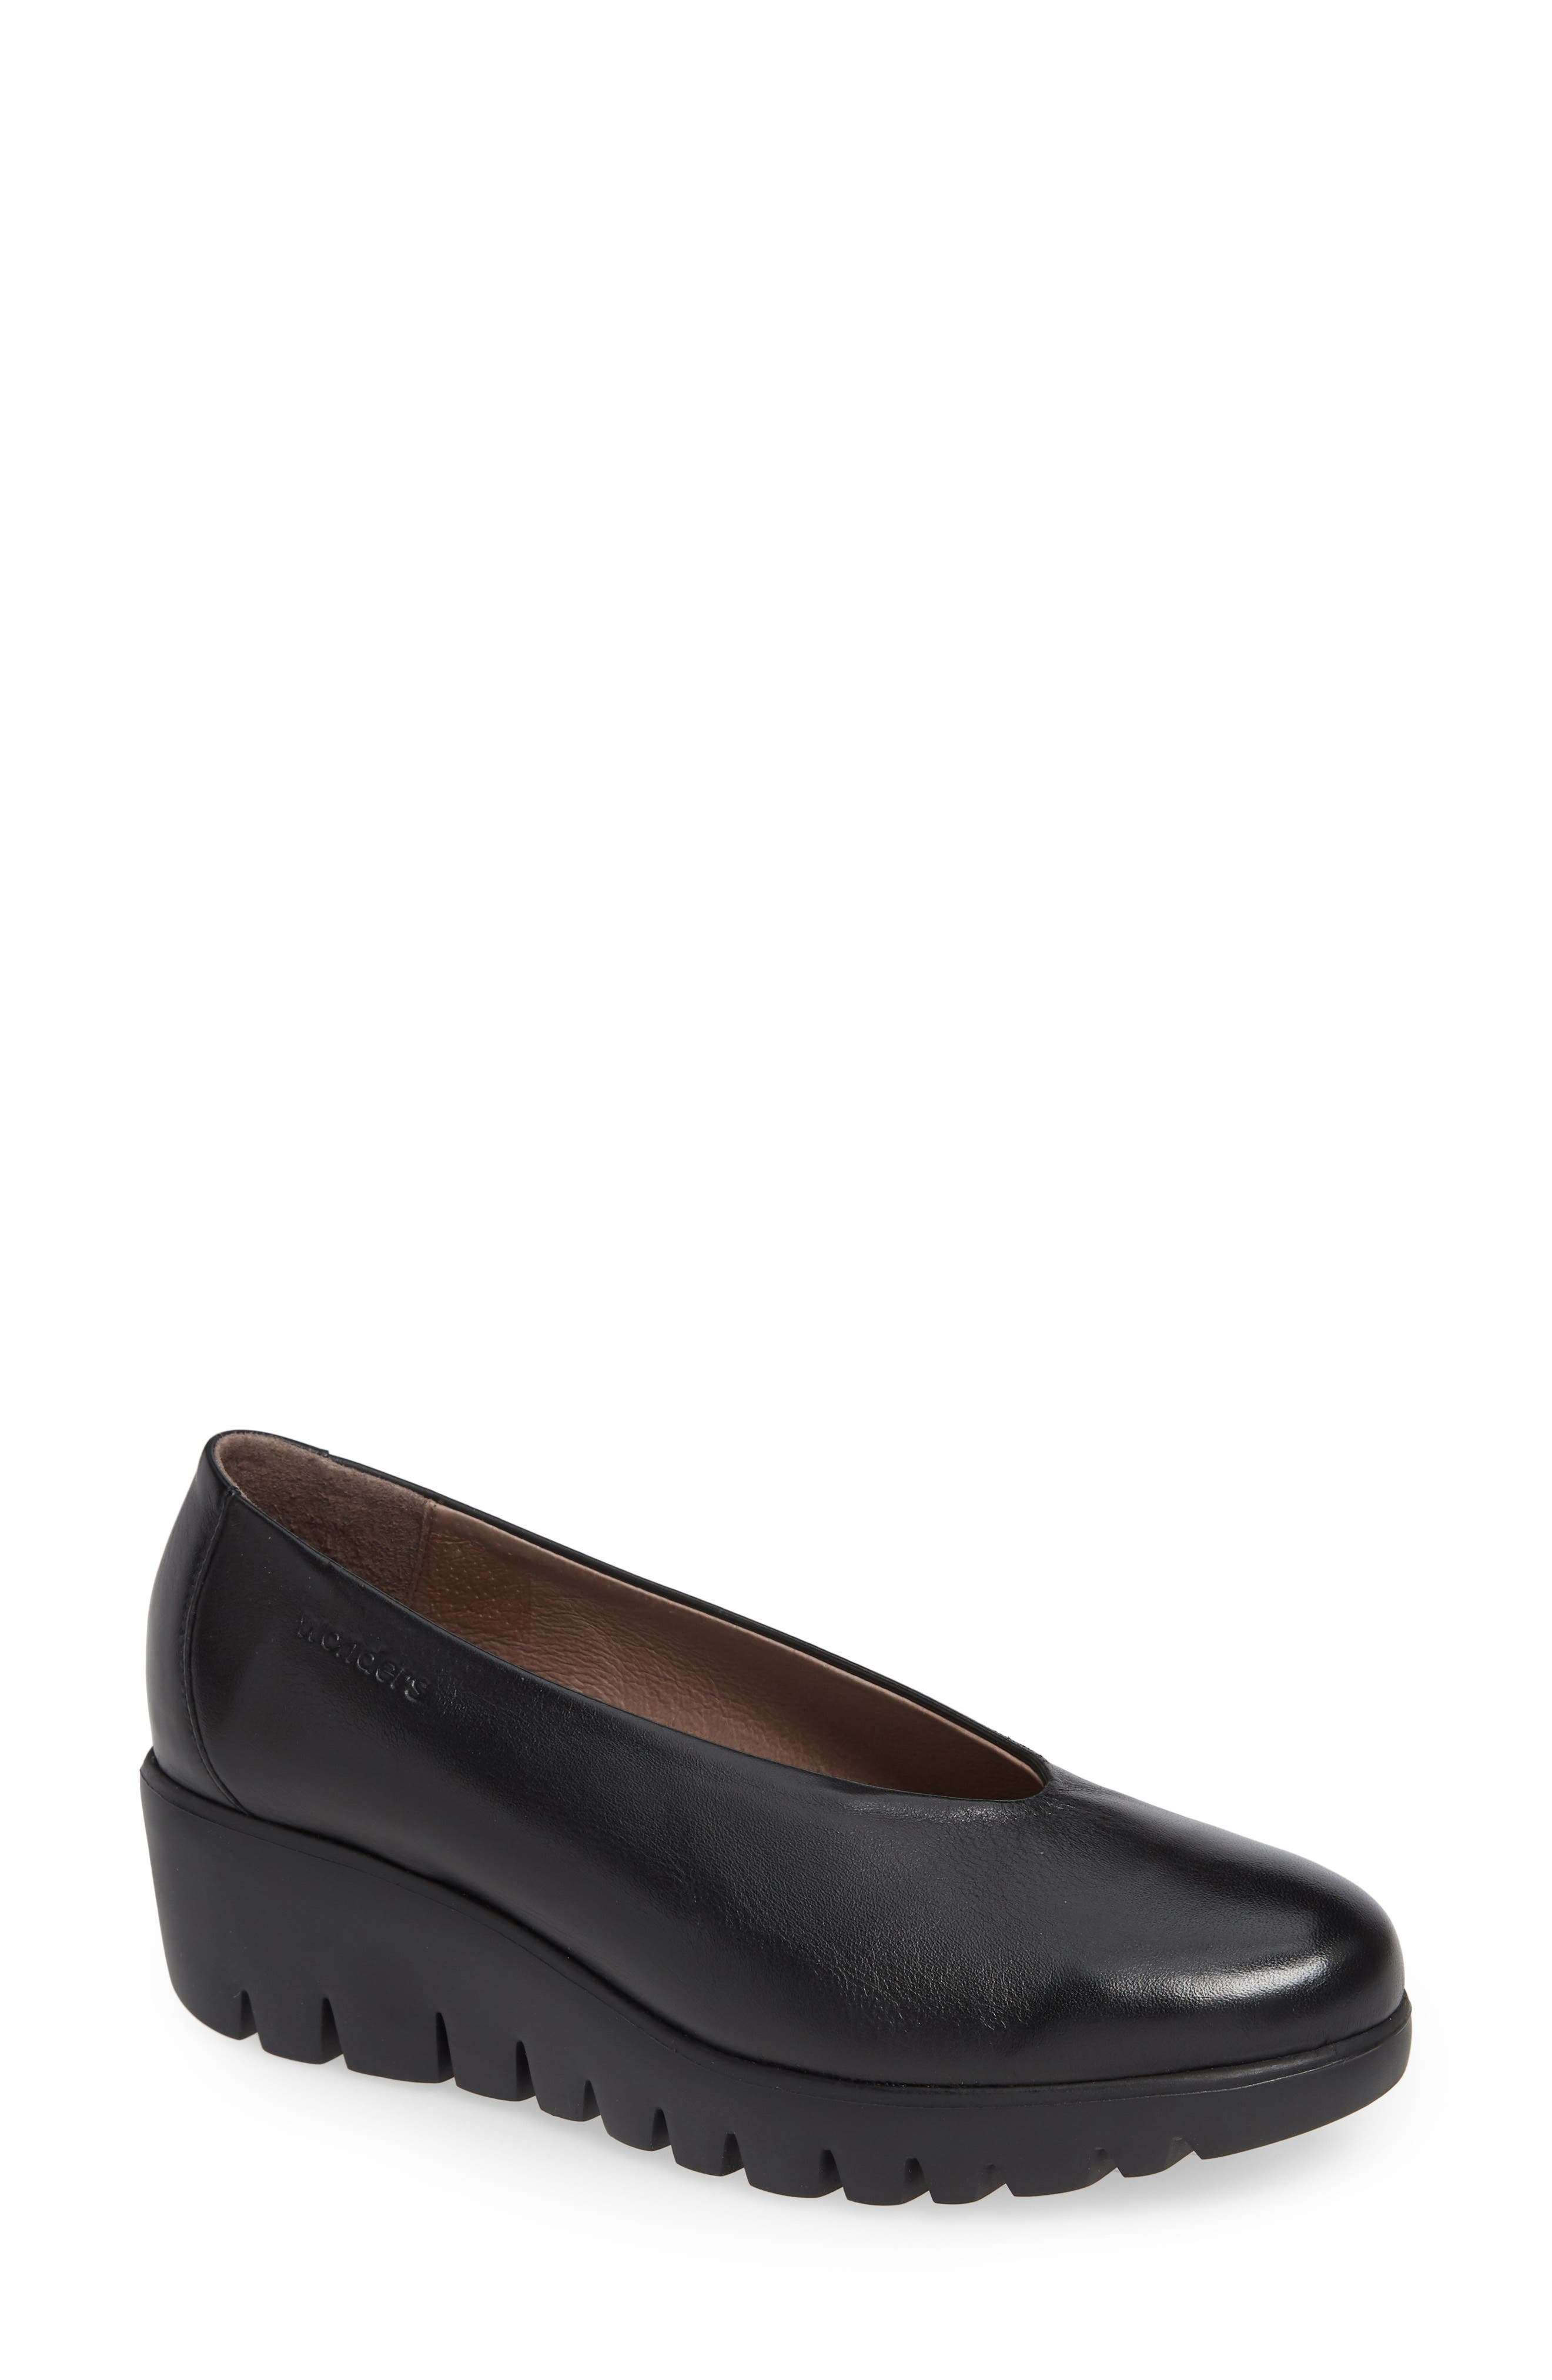 Extralite Wedge Pump,                             Main thumbnail 1, color,                             BLACK LEATHER